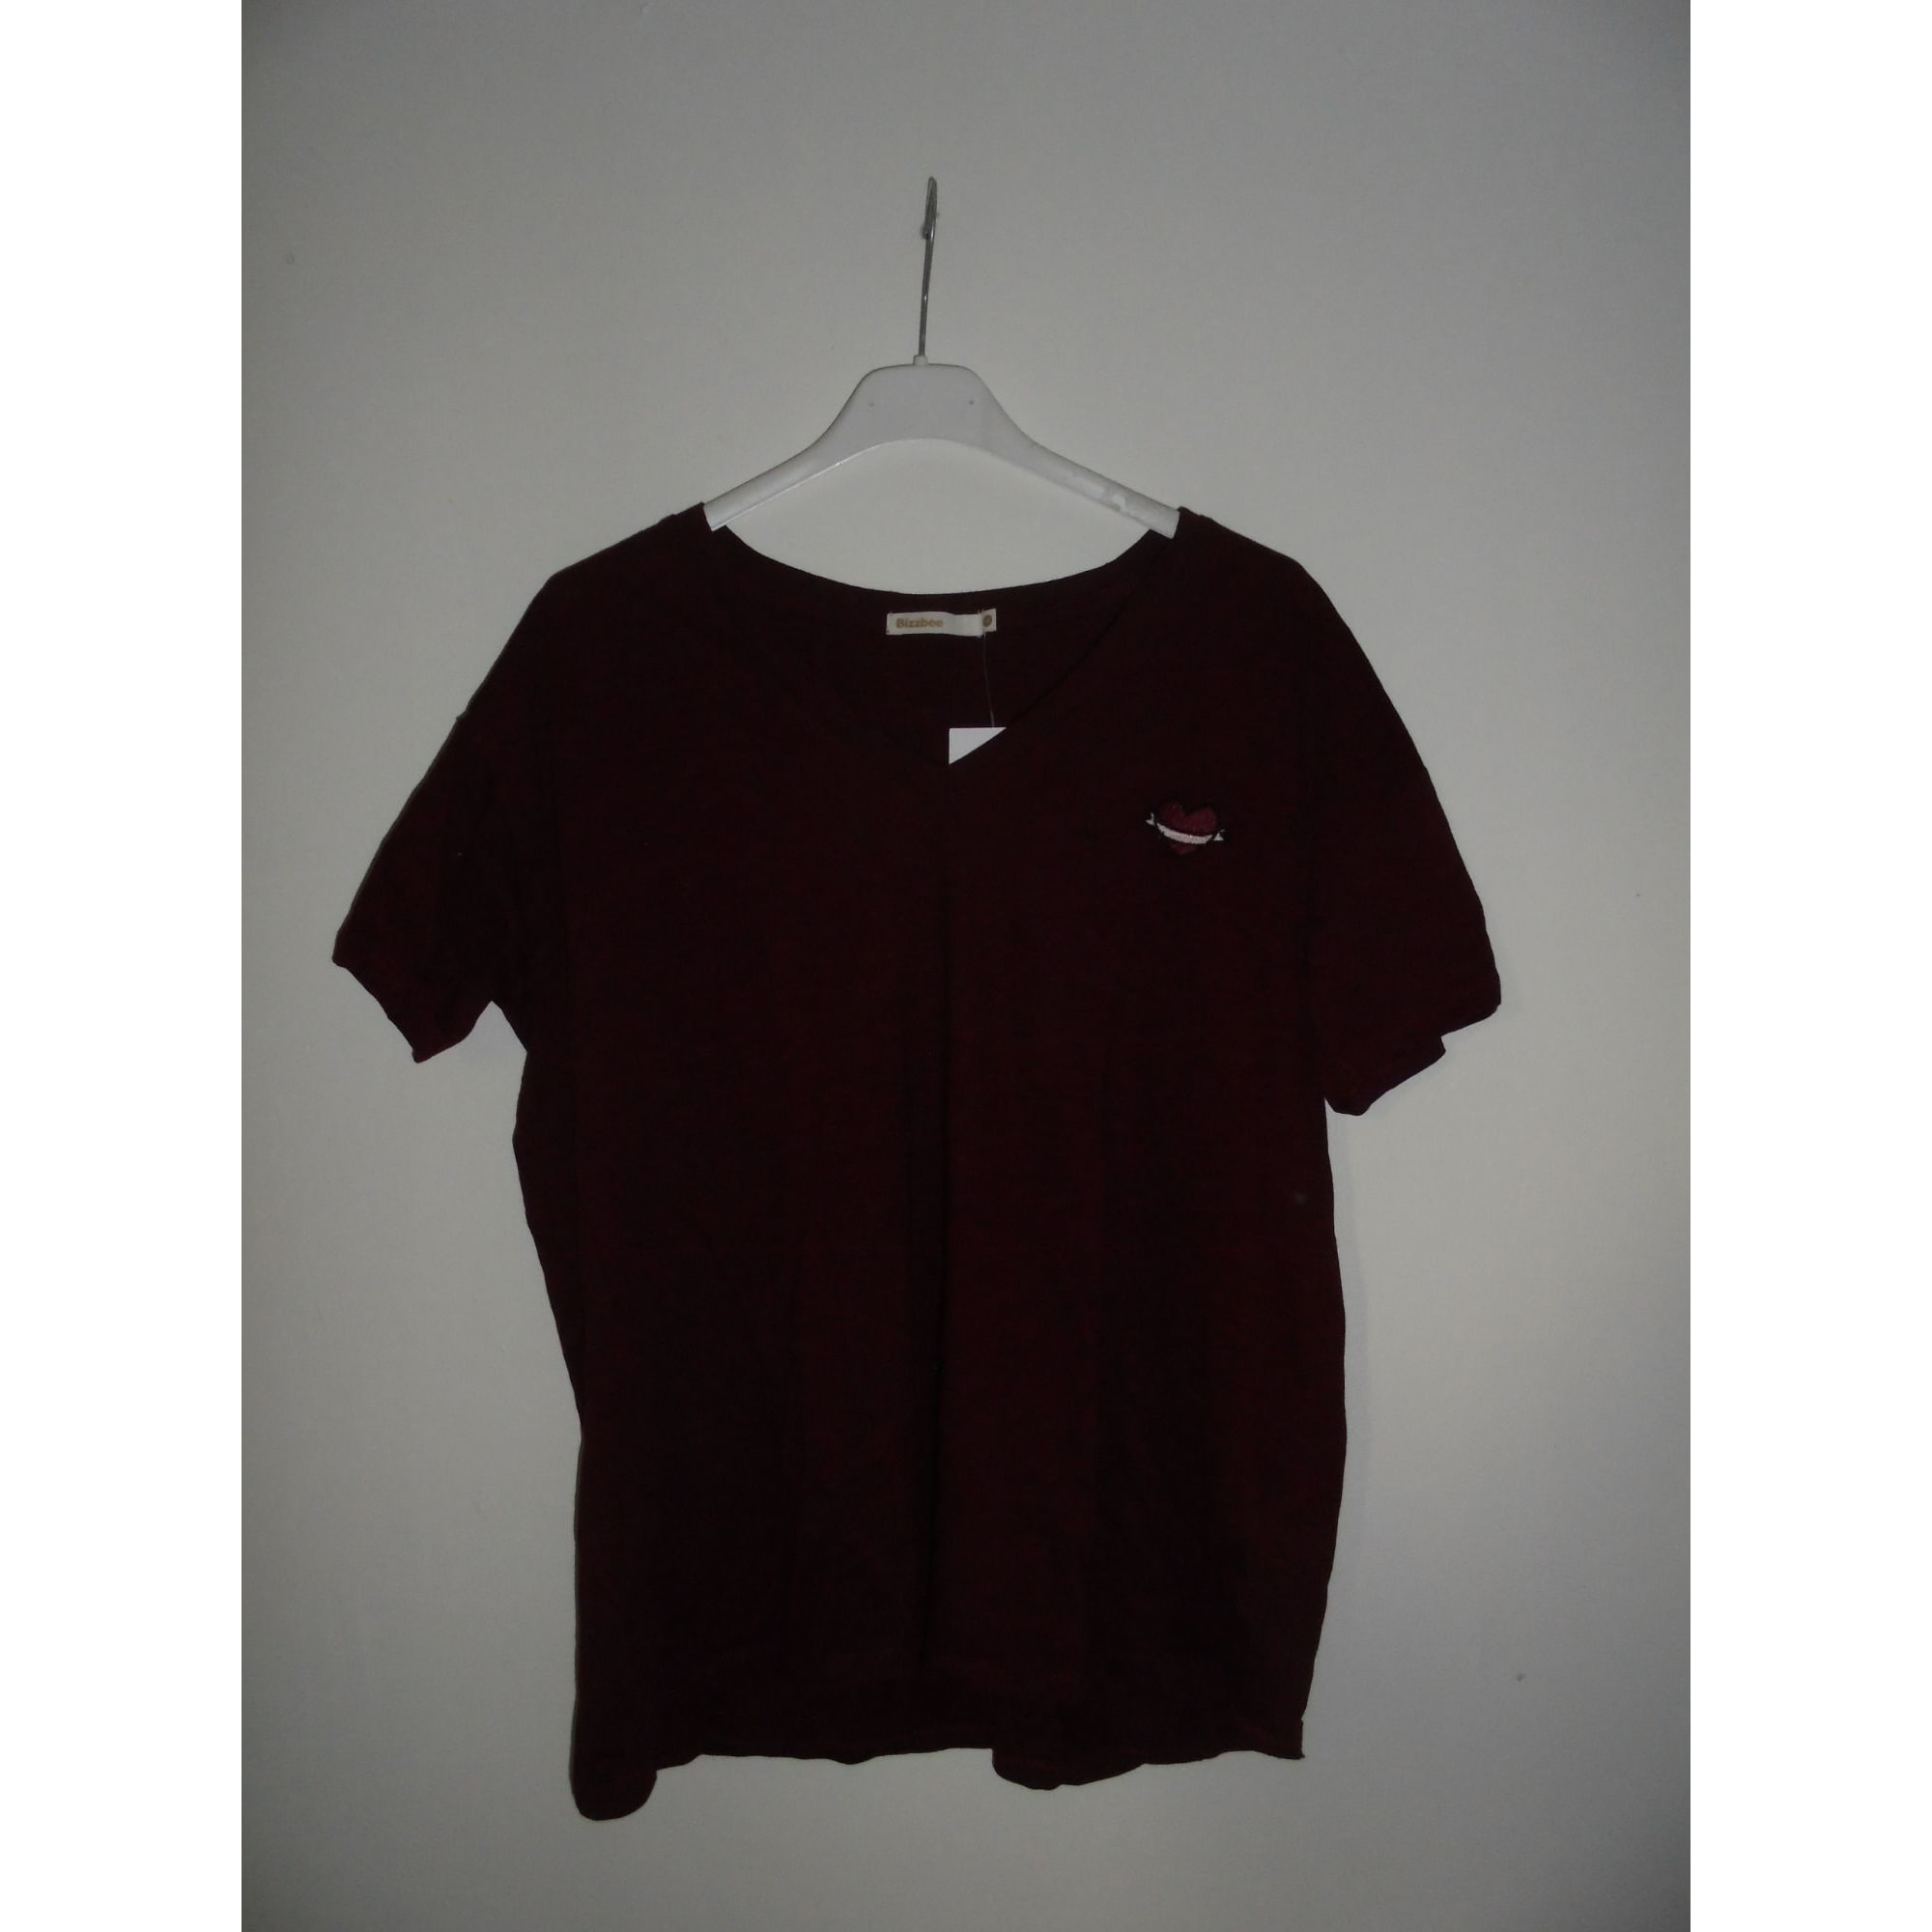 Top, tee-shirt JENNYFER Rouge, bordeaux